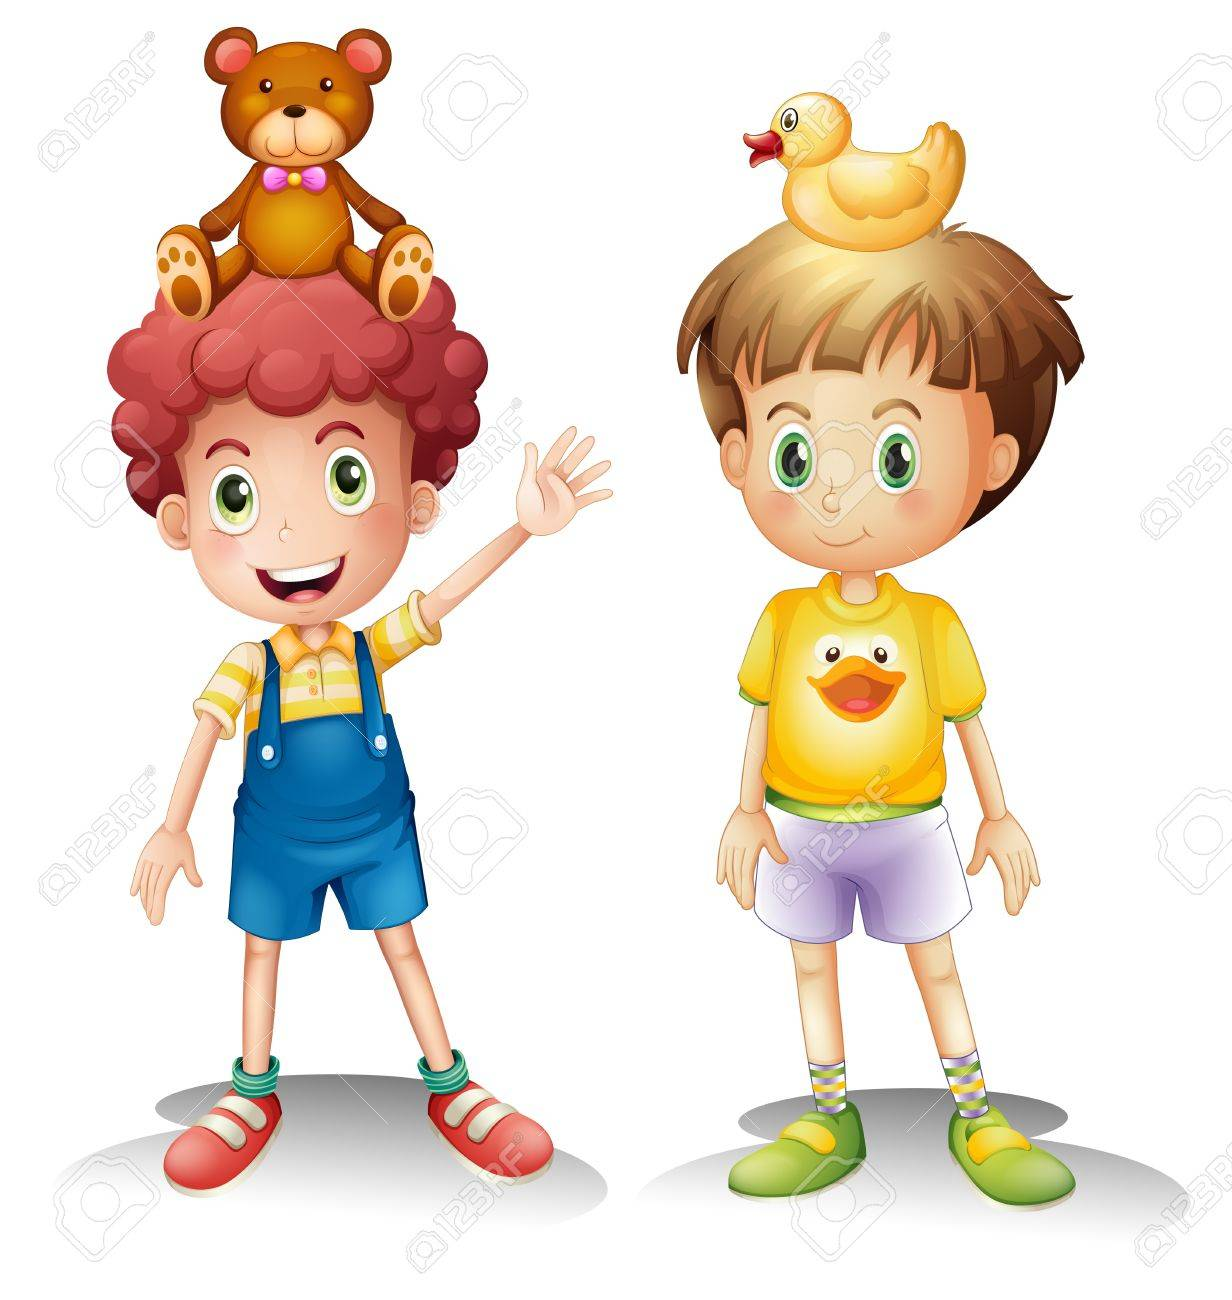 Illustration of the two boys with their toys above their heads on a white background Stock Vector - 18825294